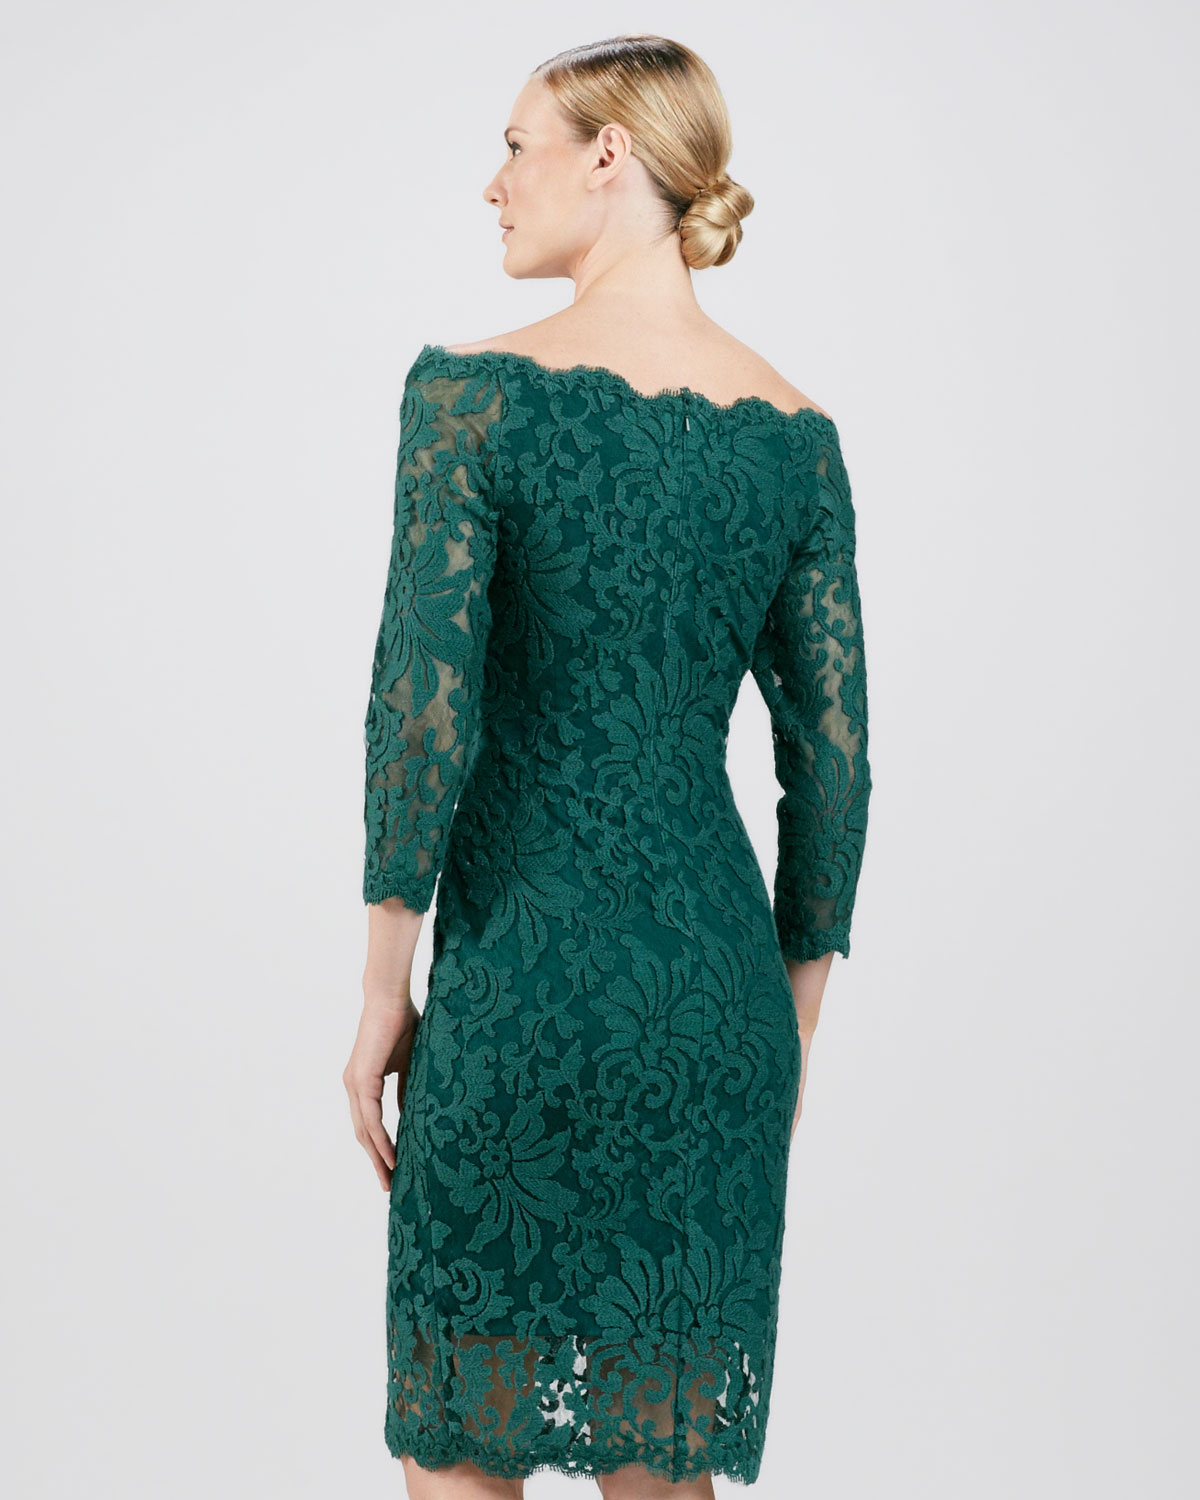 jcpenney petite evening dresses photo - 1